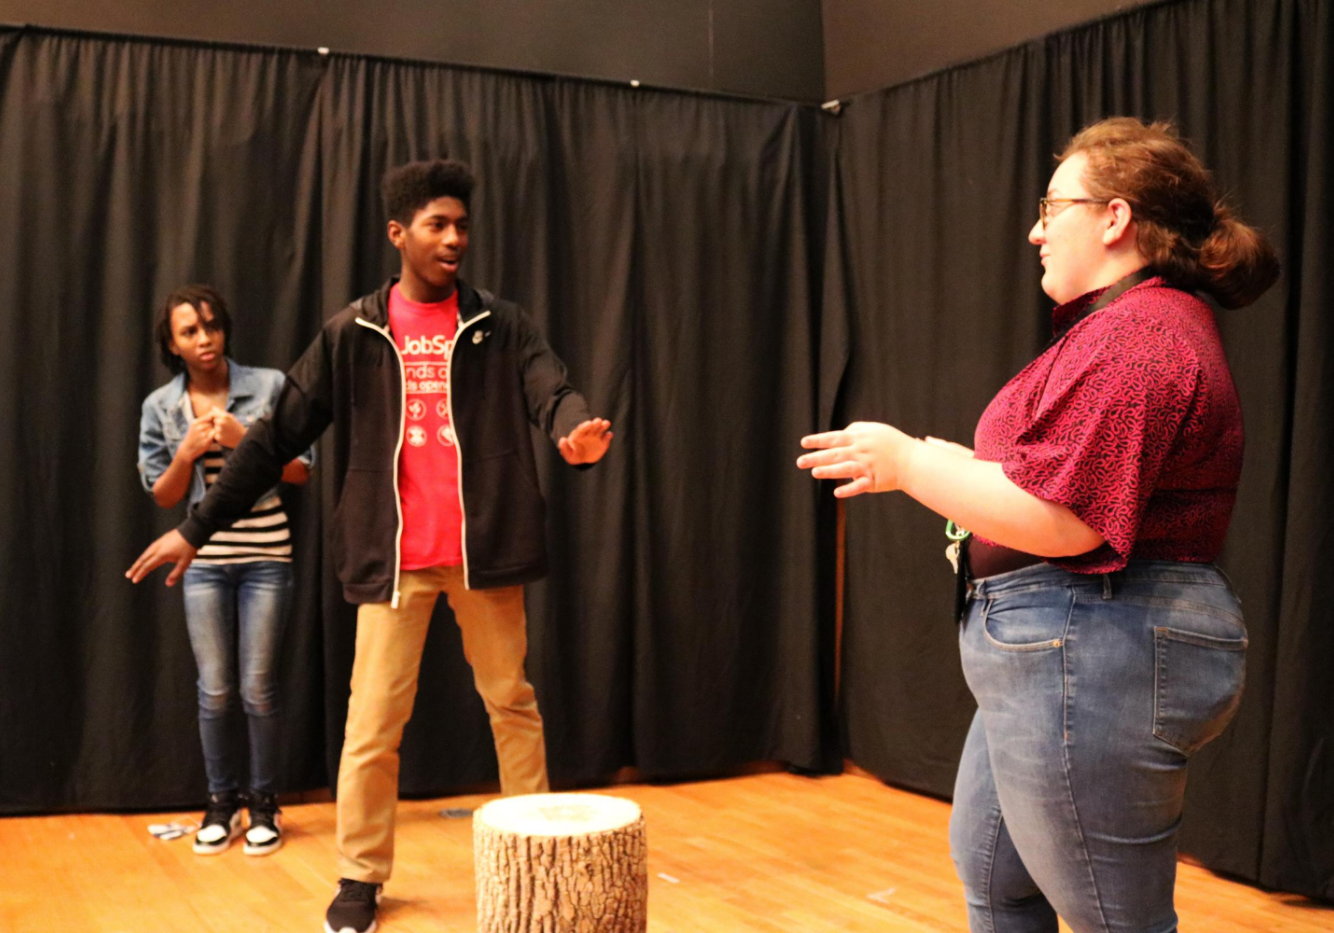 Actors rehearsing the play